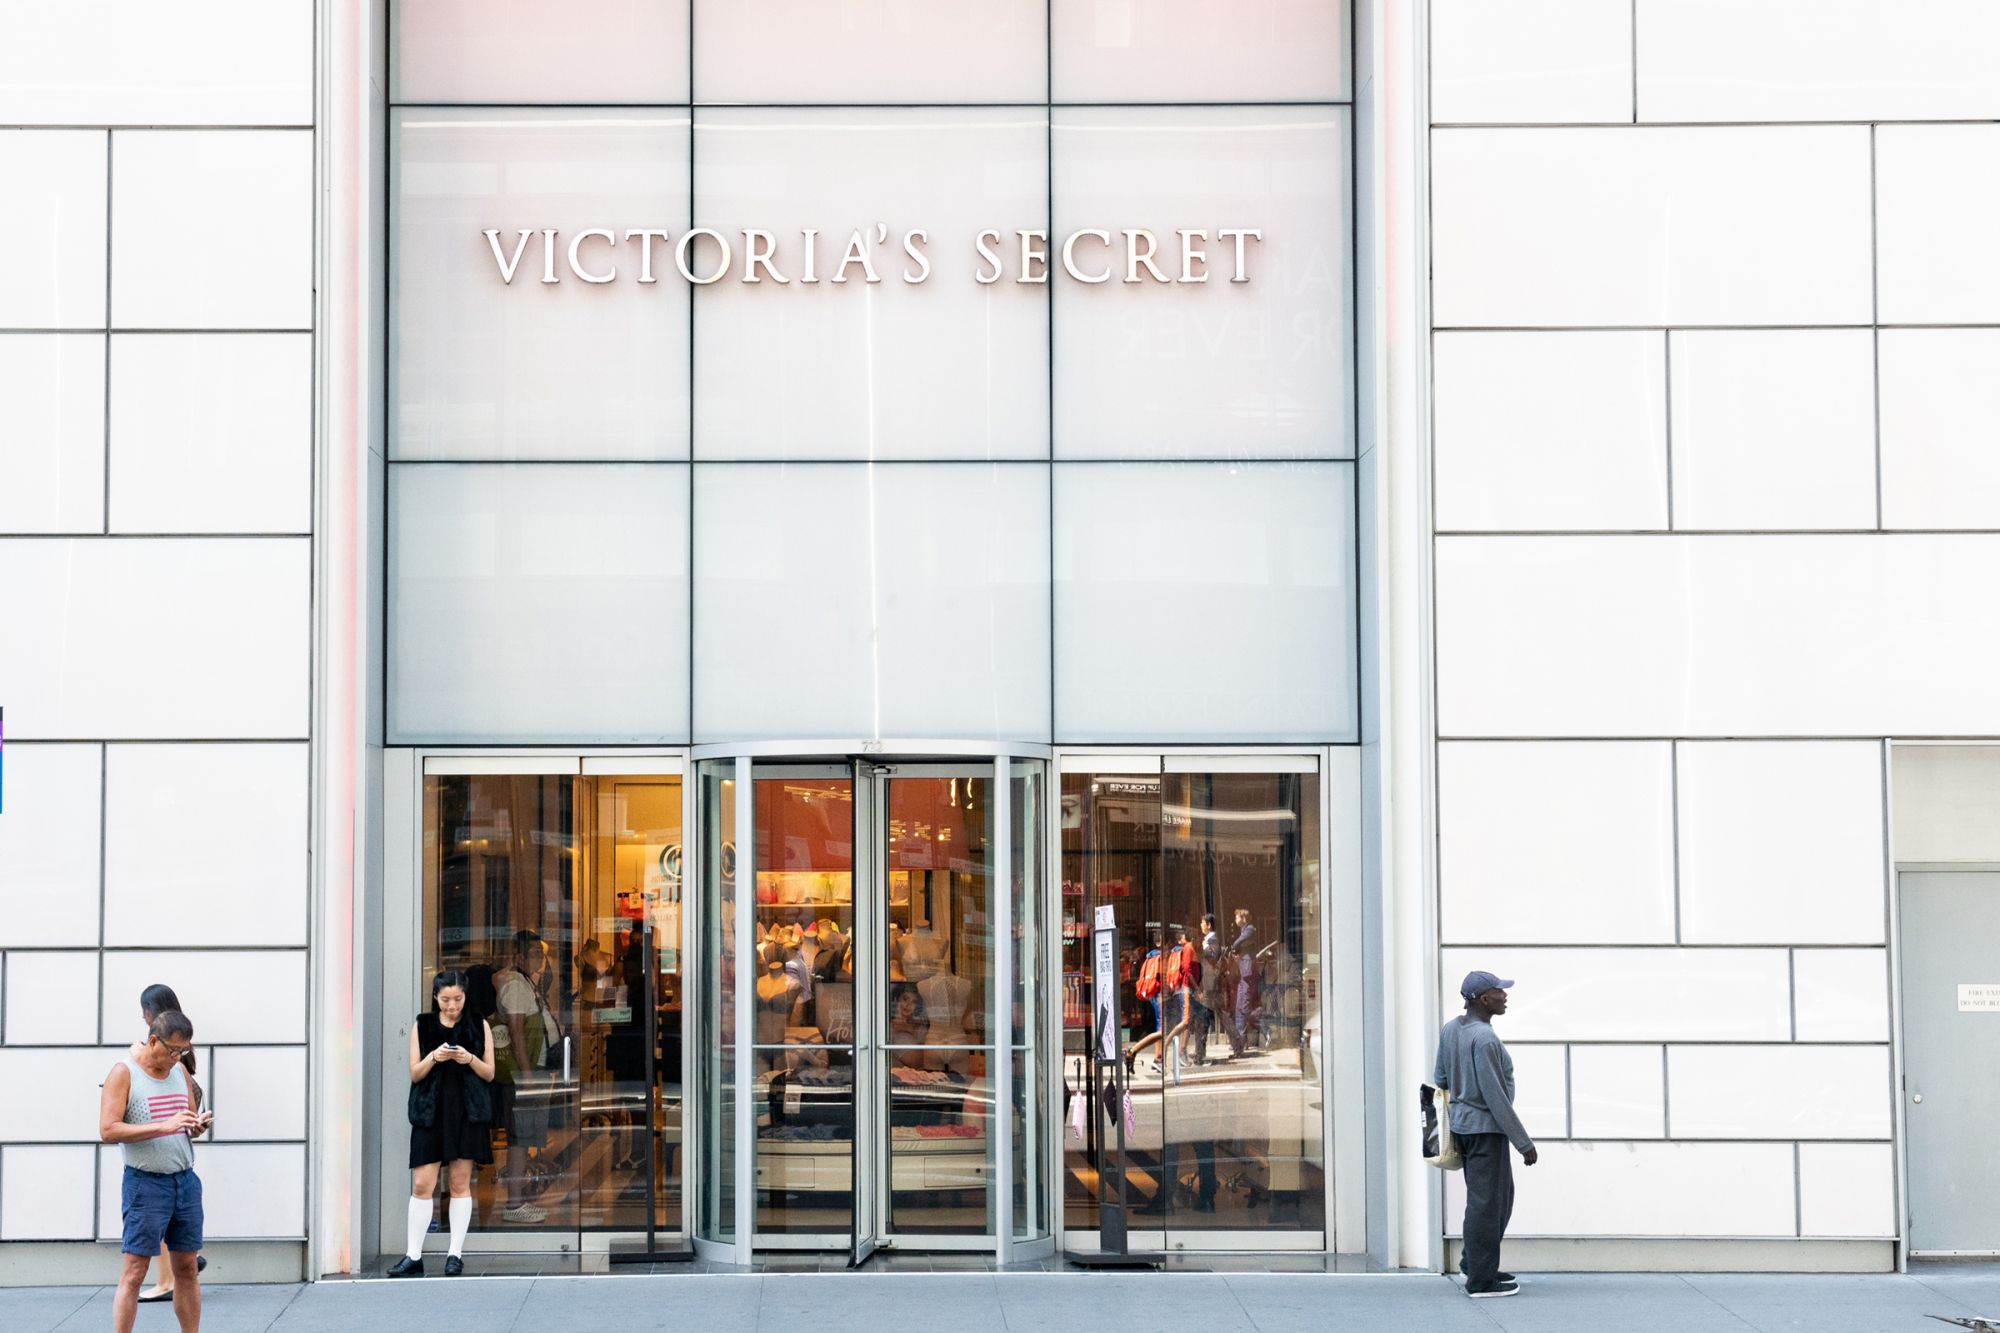 Entrepreneur Index™ and Victoria's Secret Shares Fall as Trade Concerns Affect Market